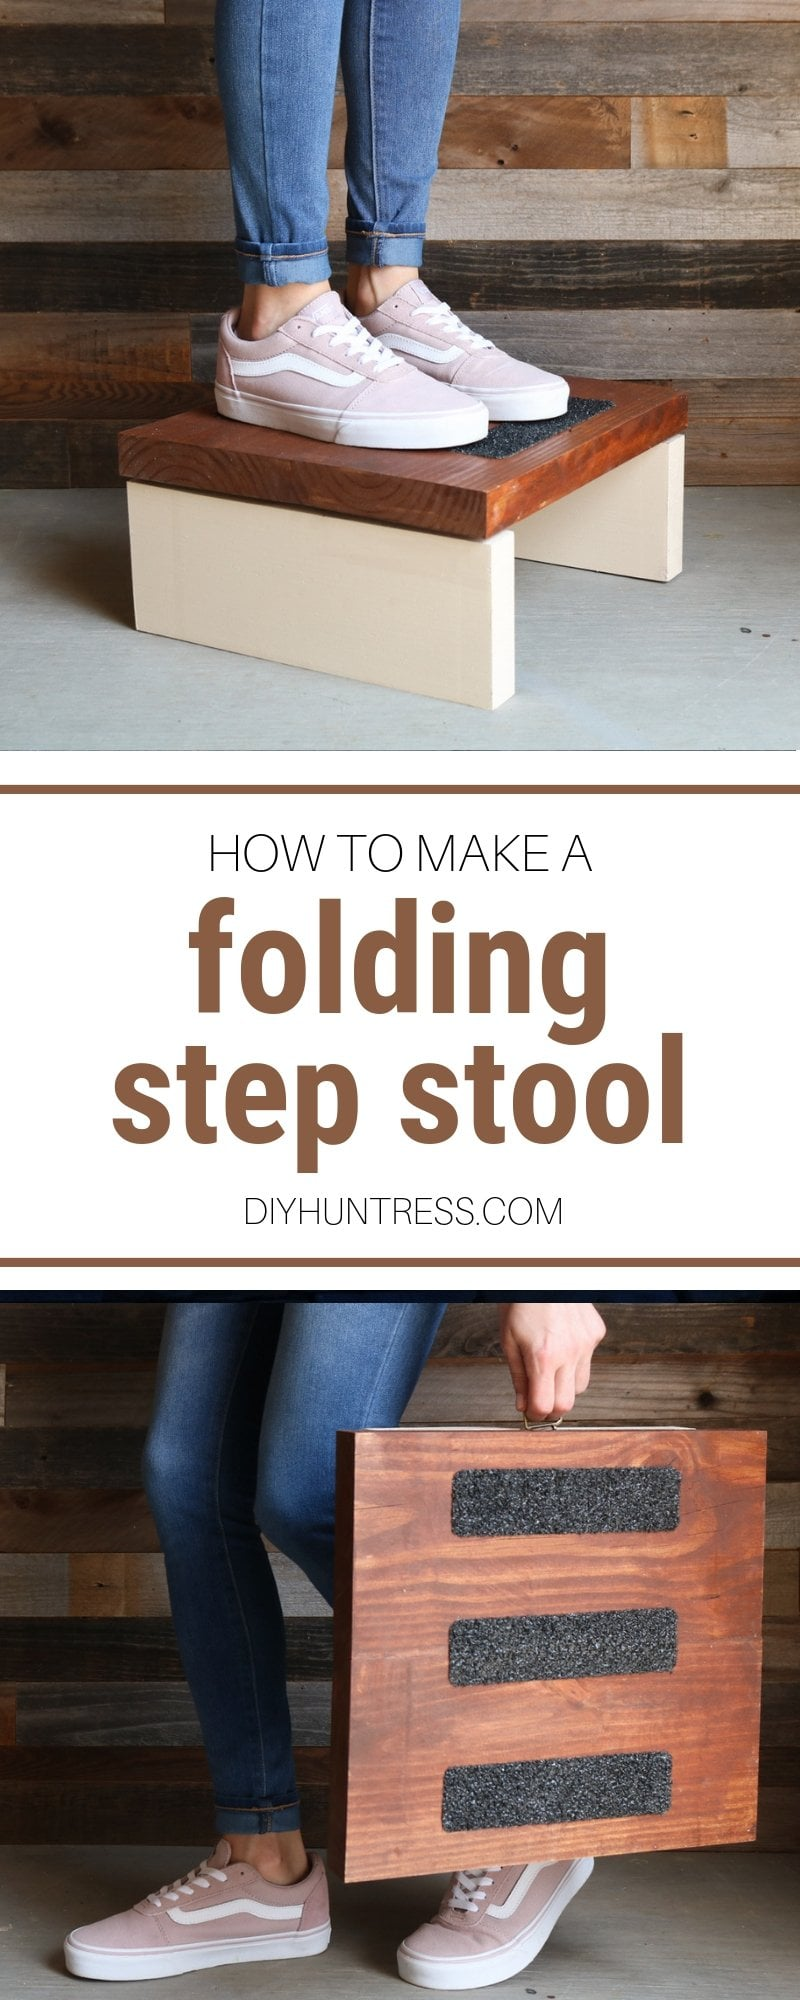 how to make a folding step stool